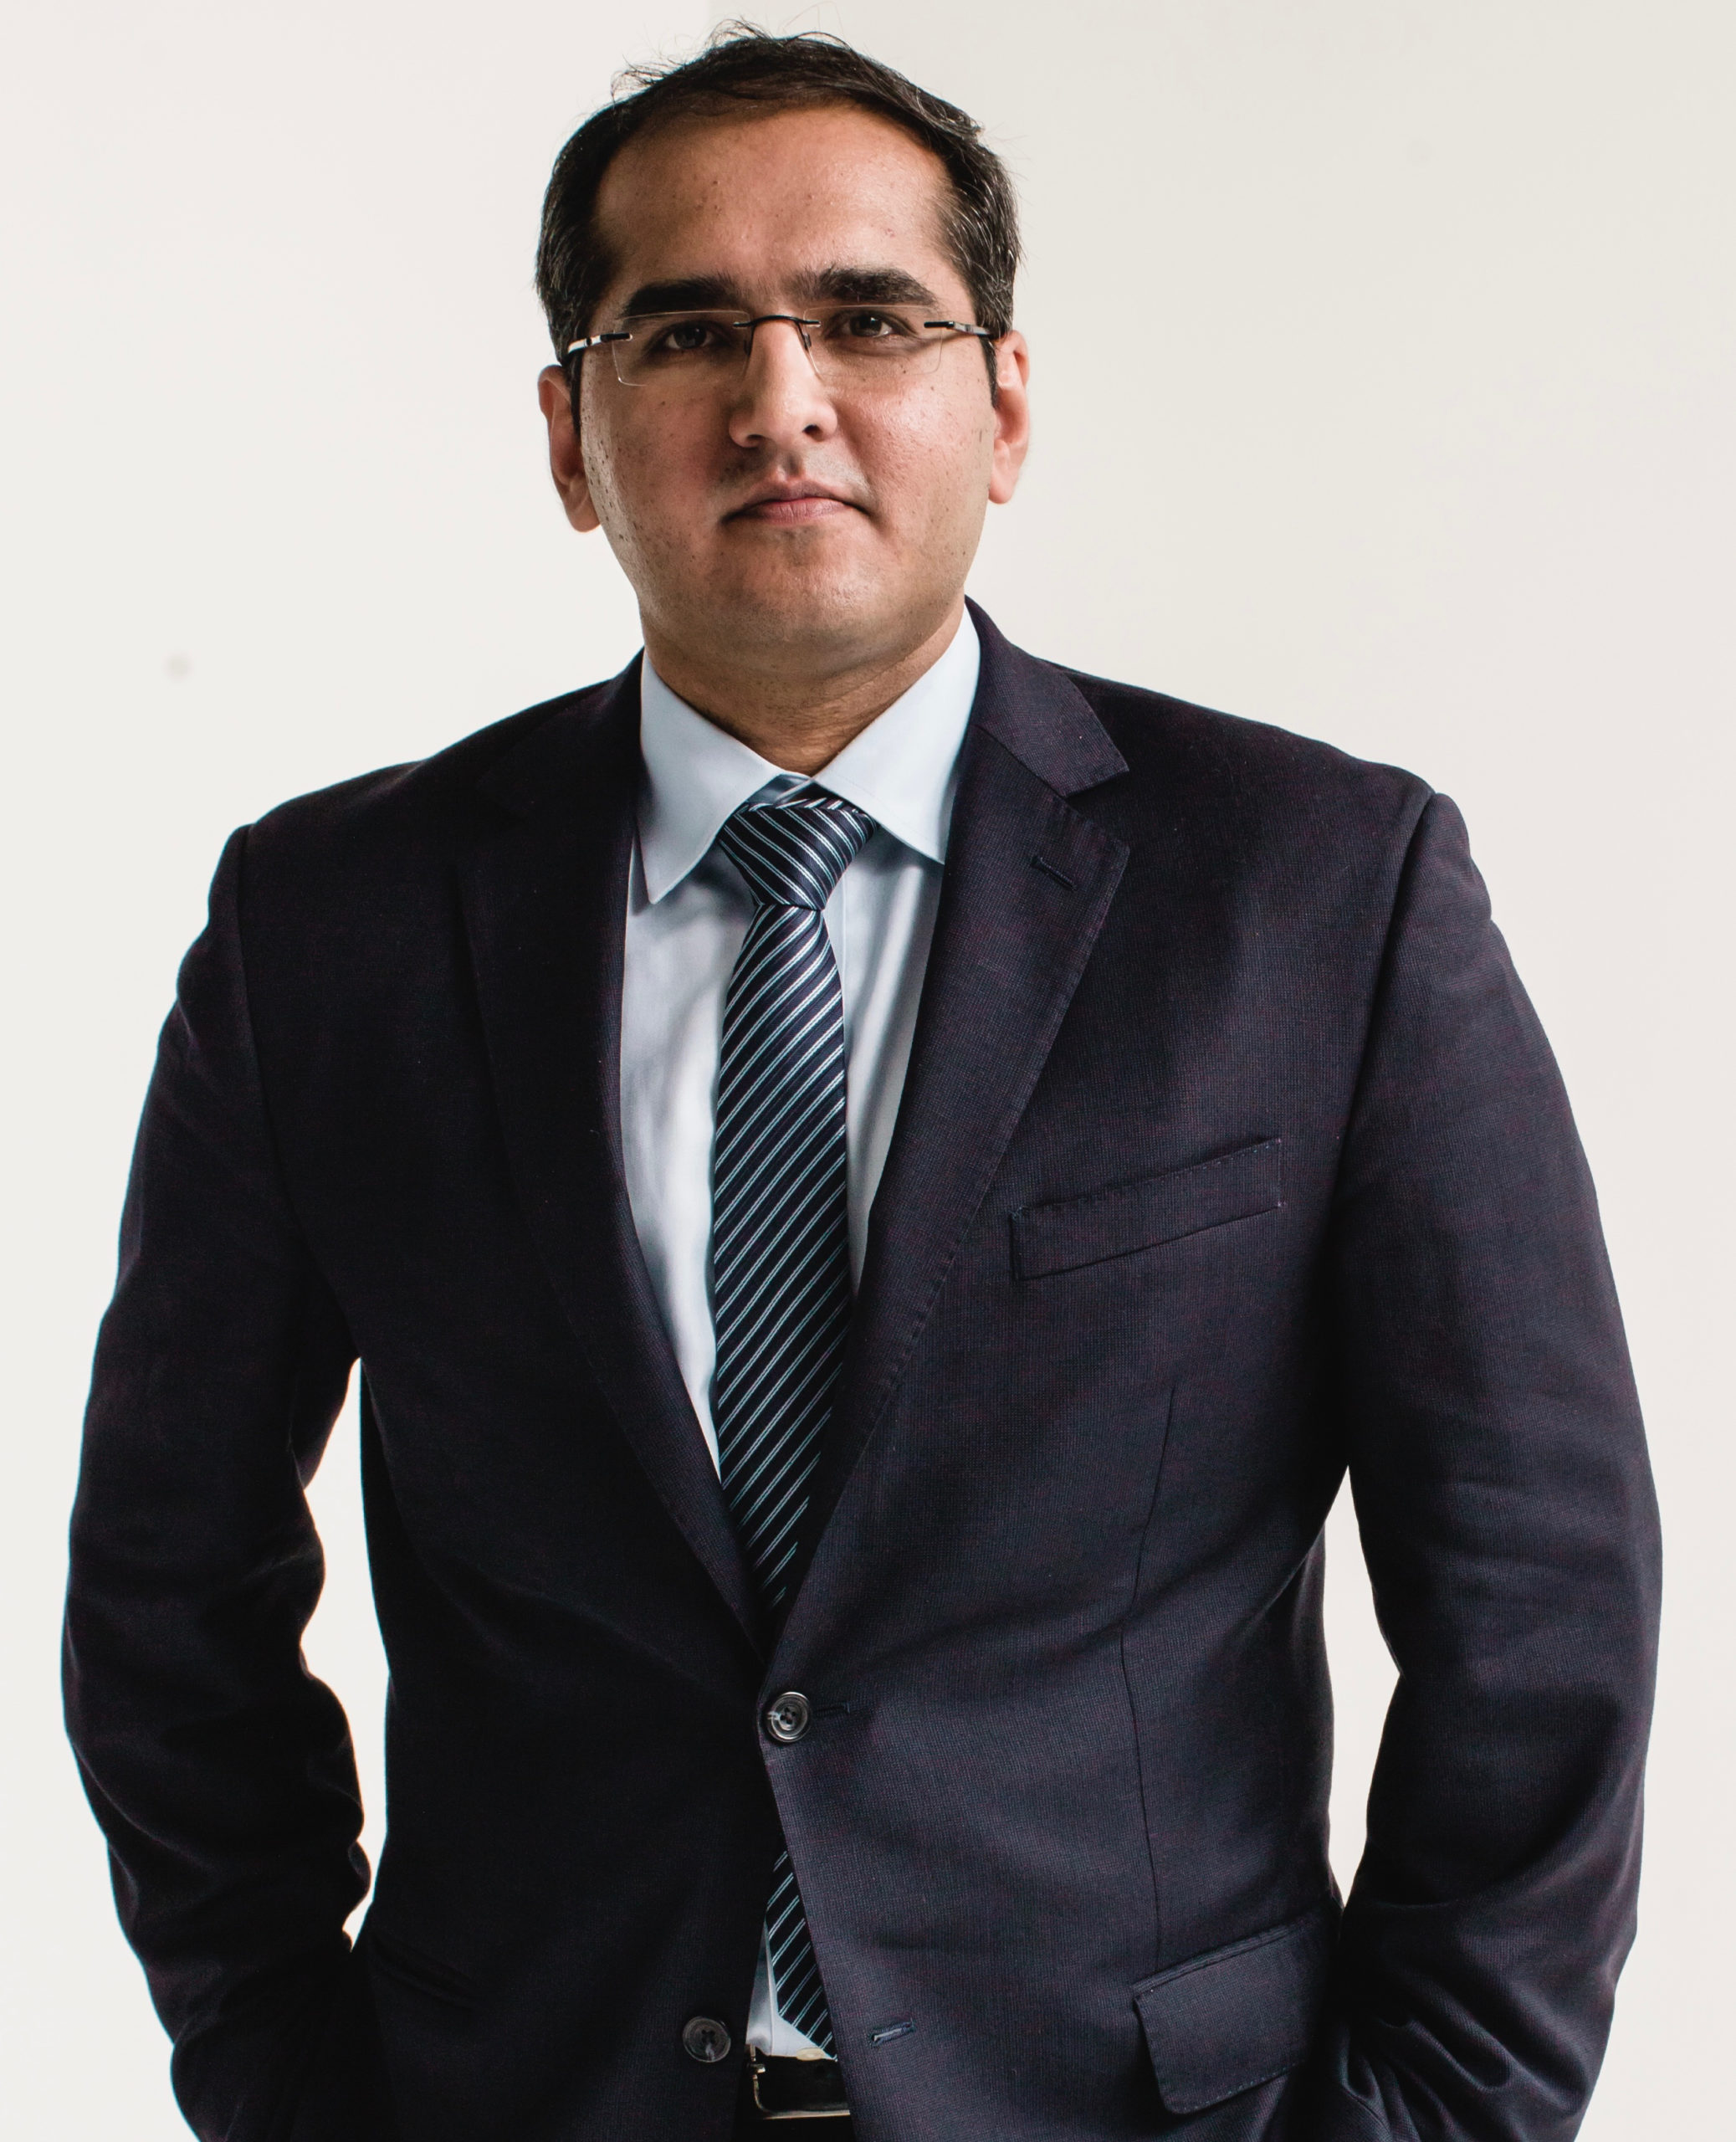 Dhaval Ponda, Global Head of Media & Entertainment Services, Tata Communications